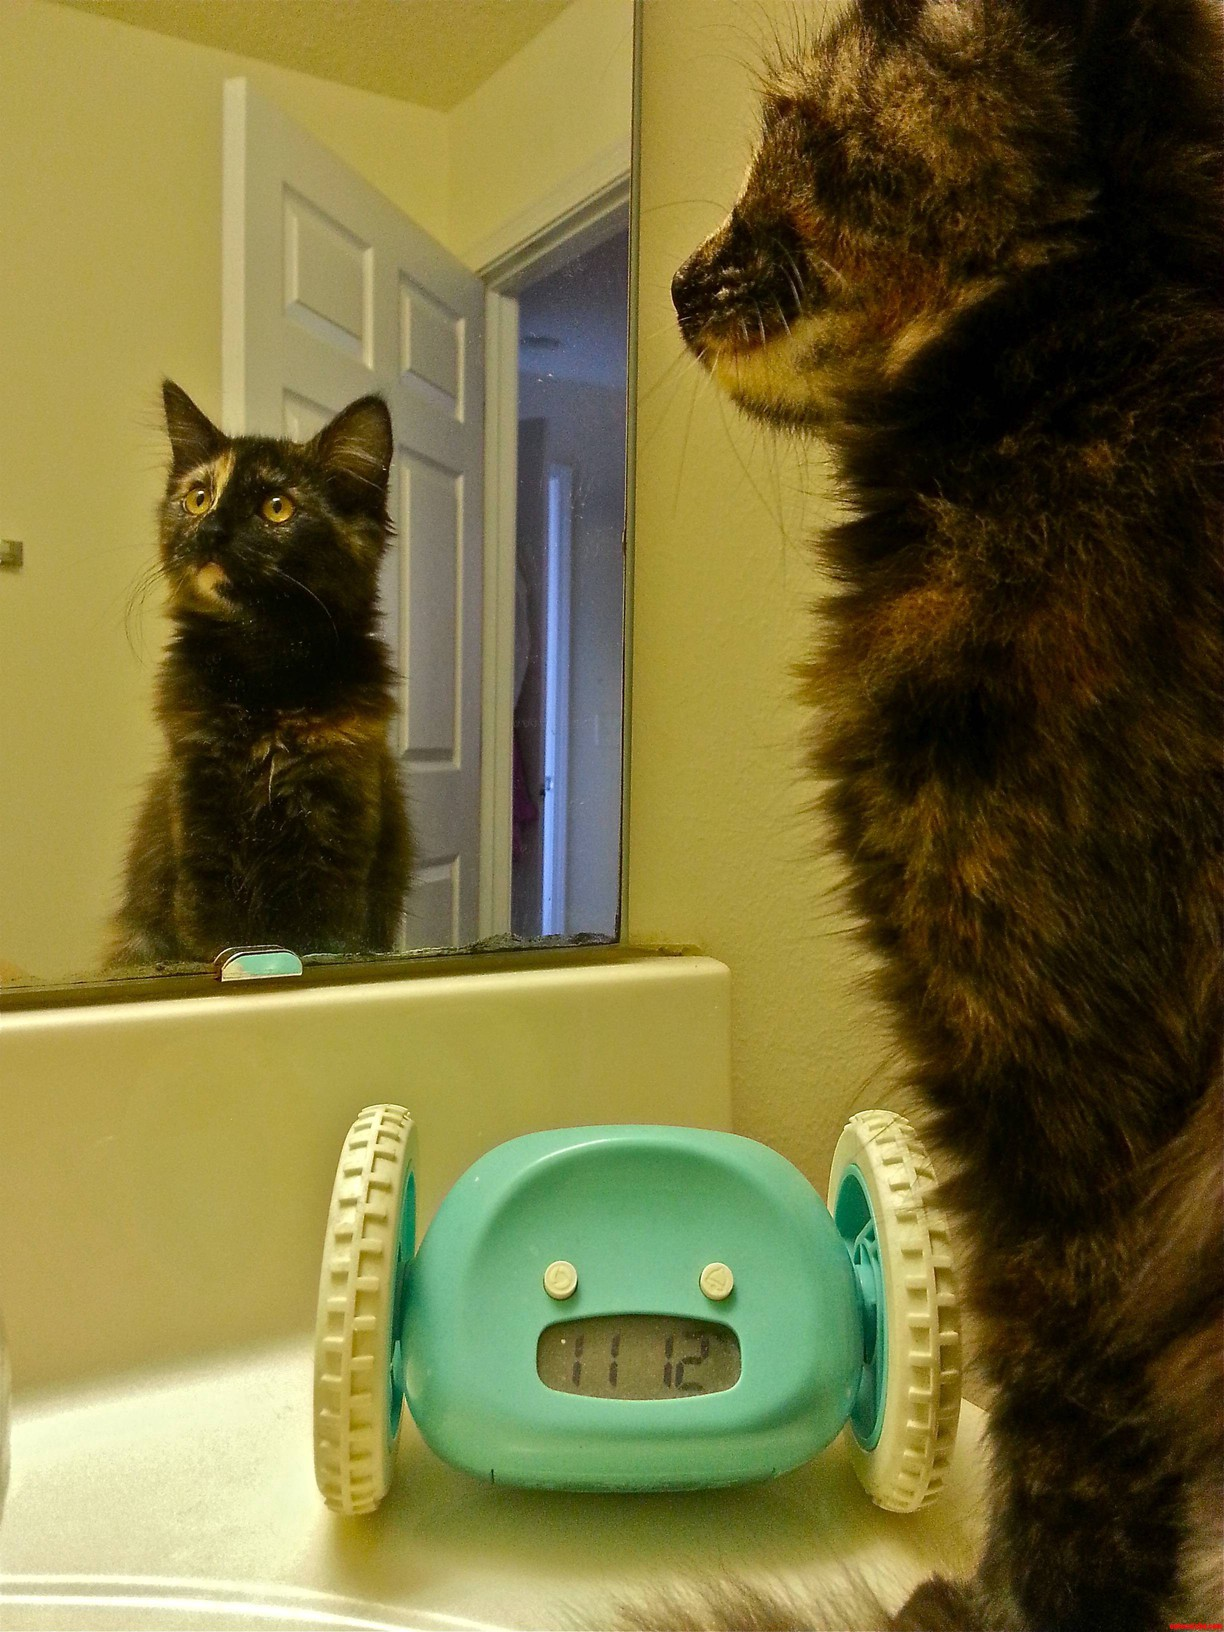 My Sweet 4 Month Old Kitten Mona Has Just Discovered The Magic Of Mirrors.